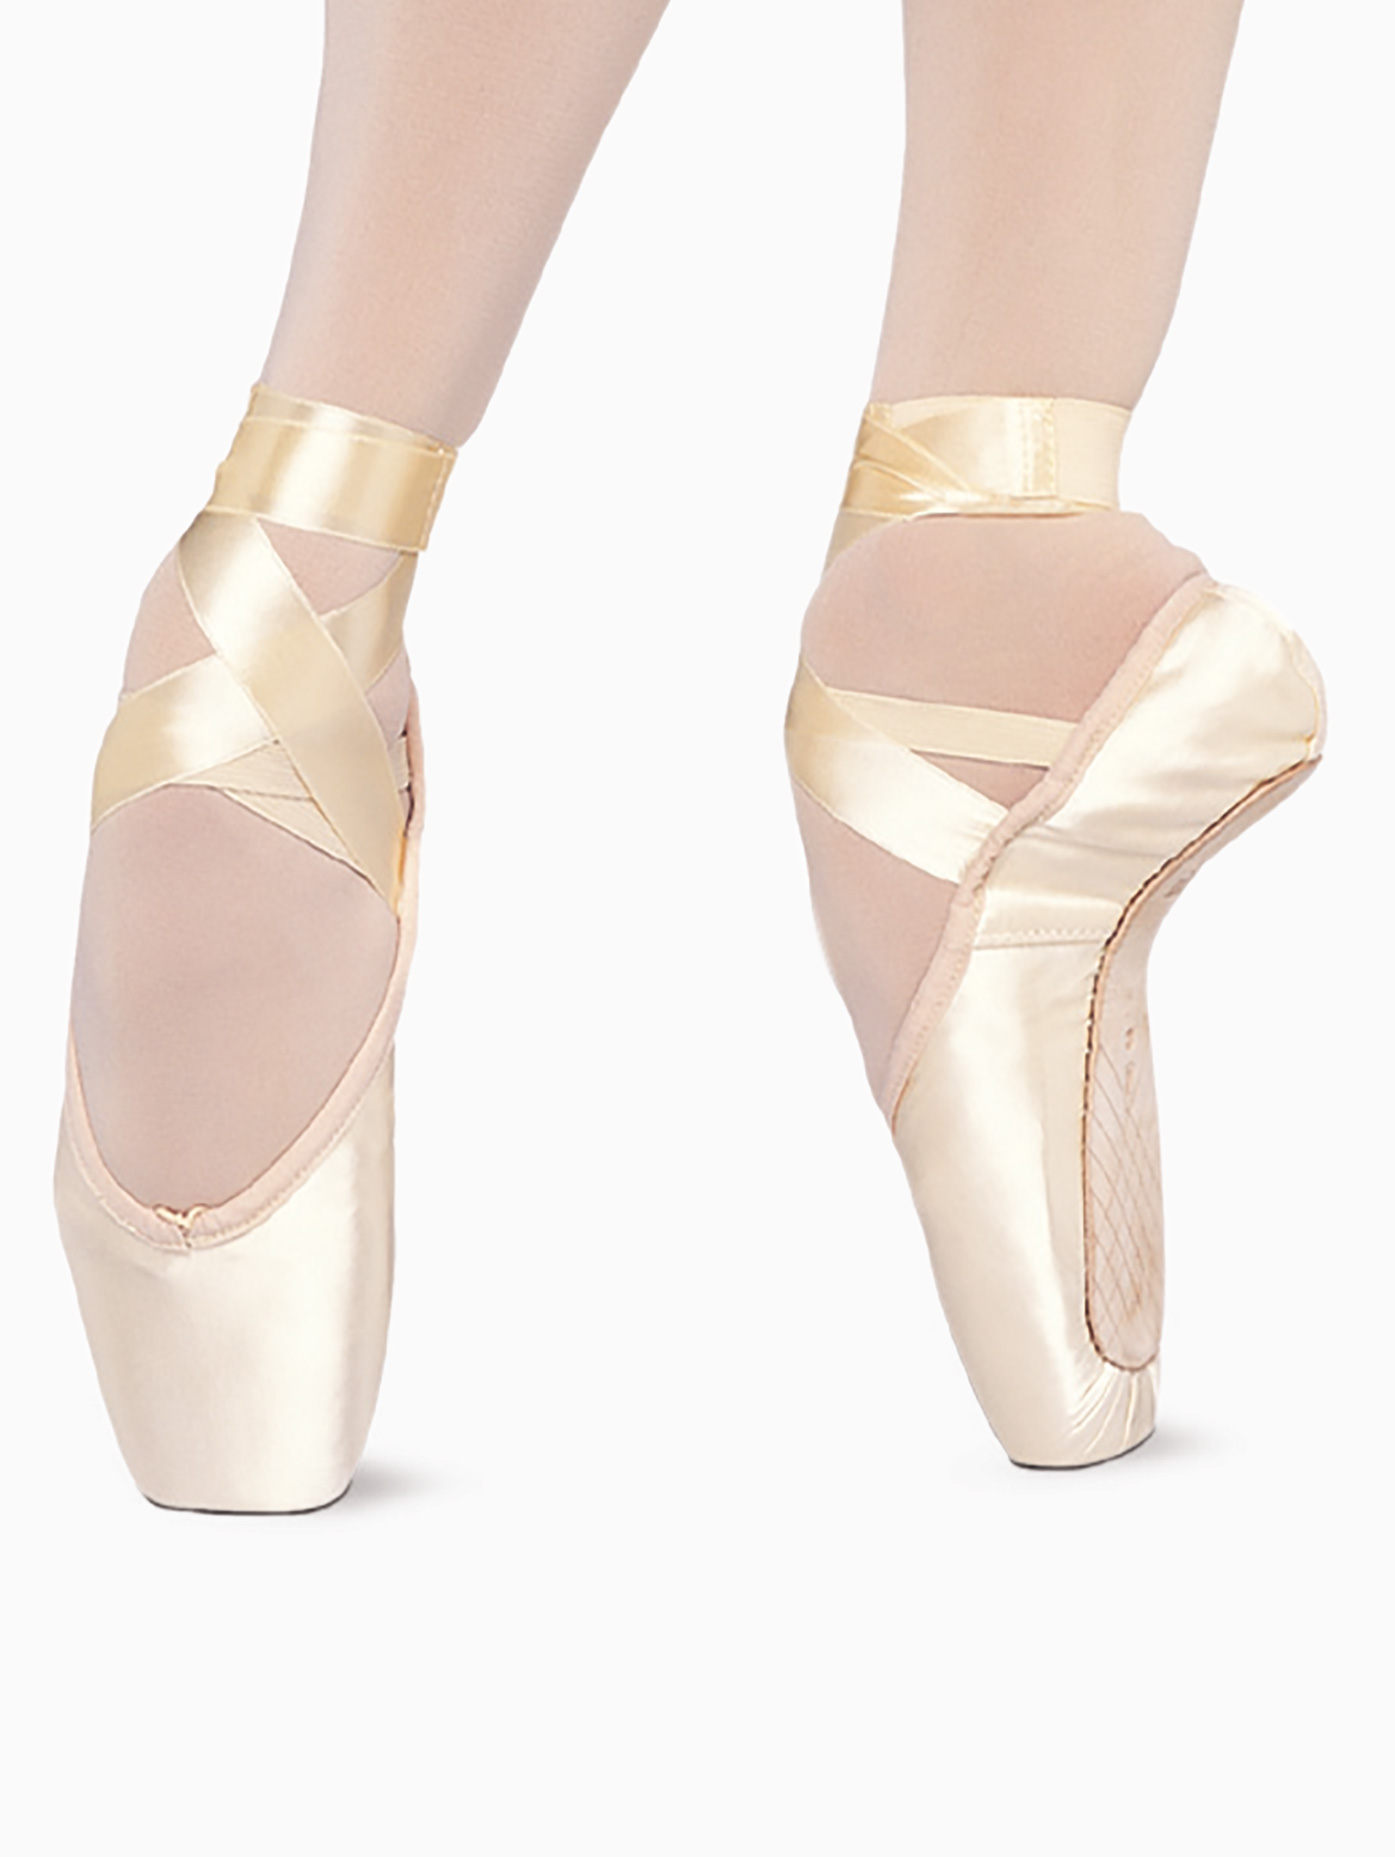 131 serenade bloch pointe shoes size 5 c width by Bloch